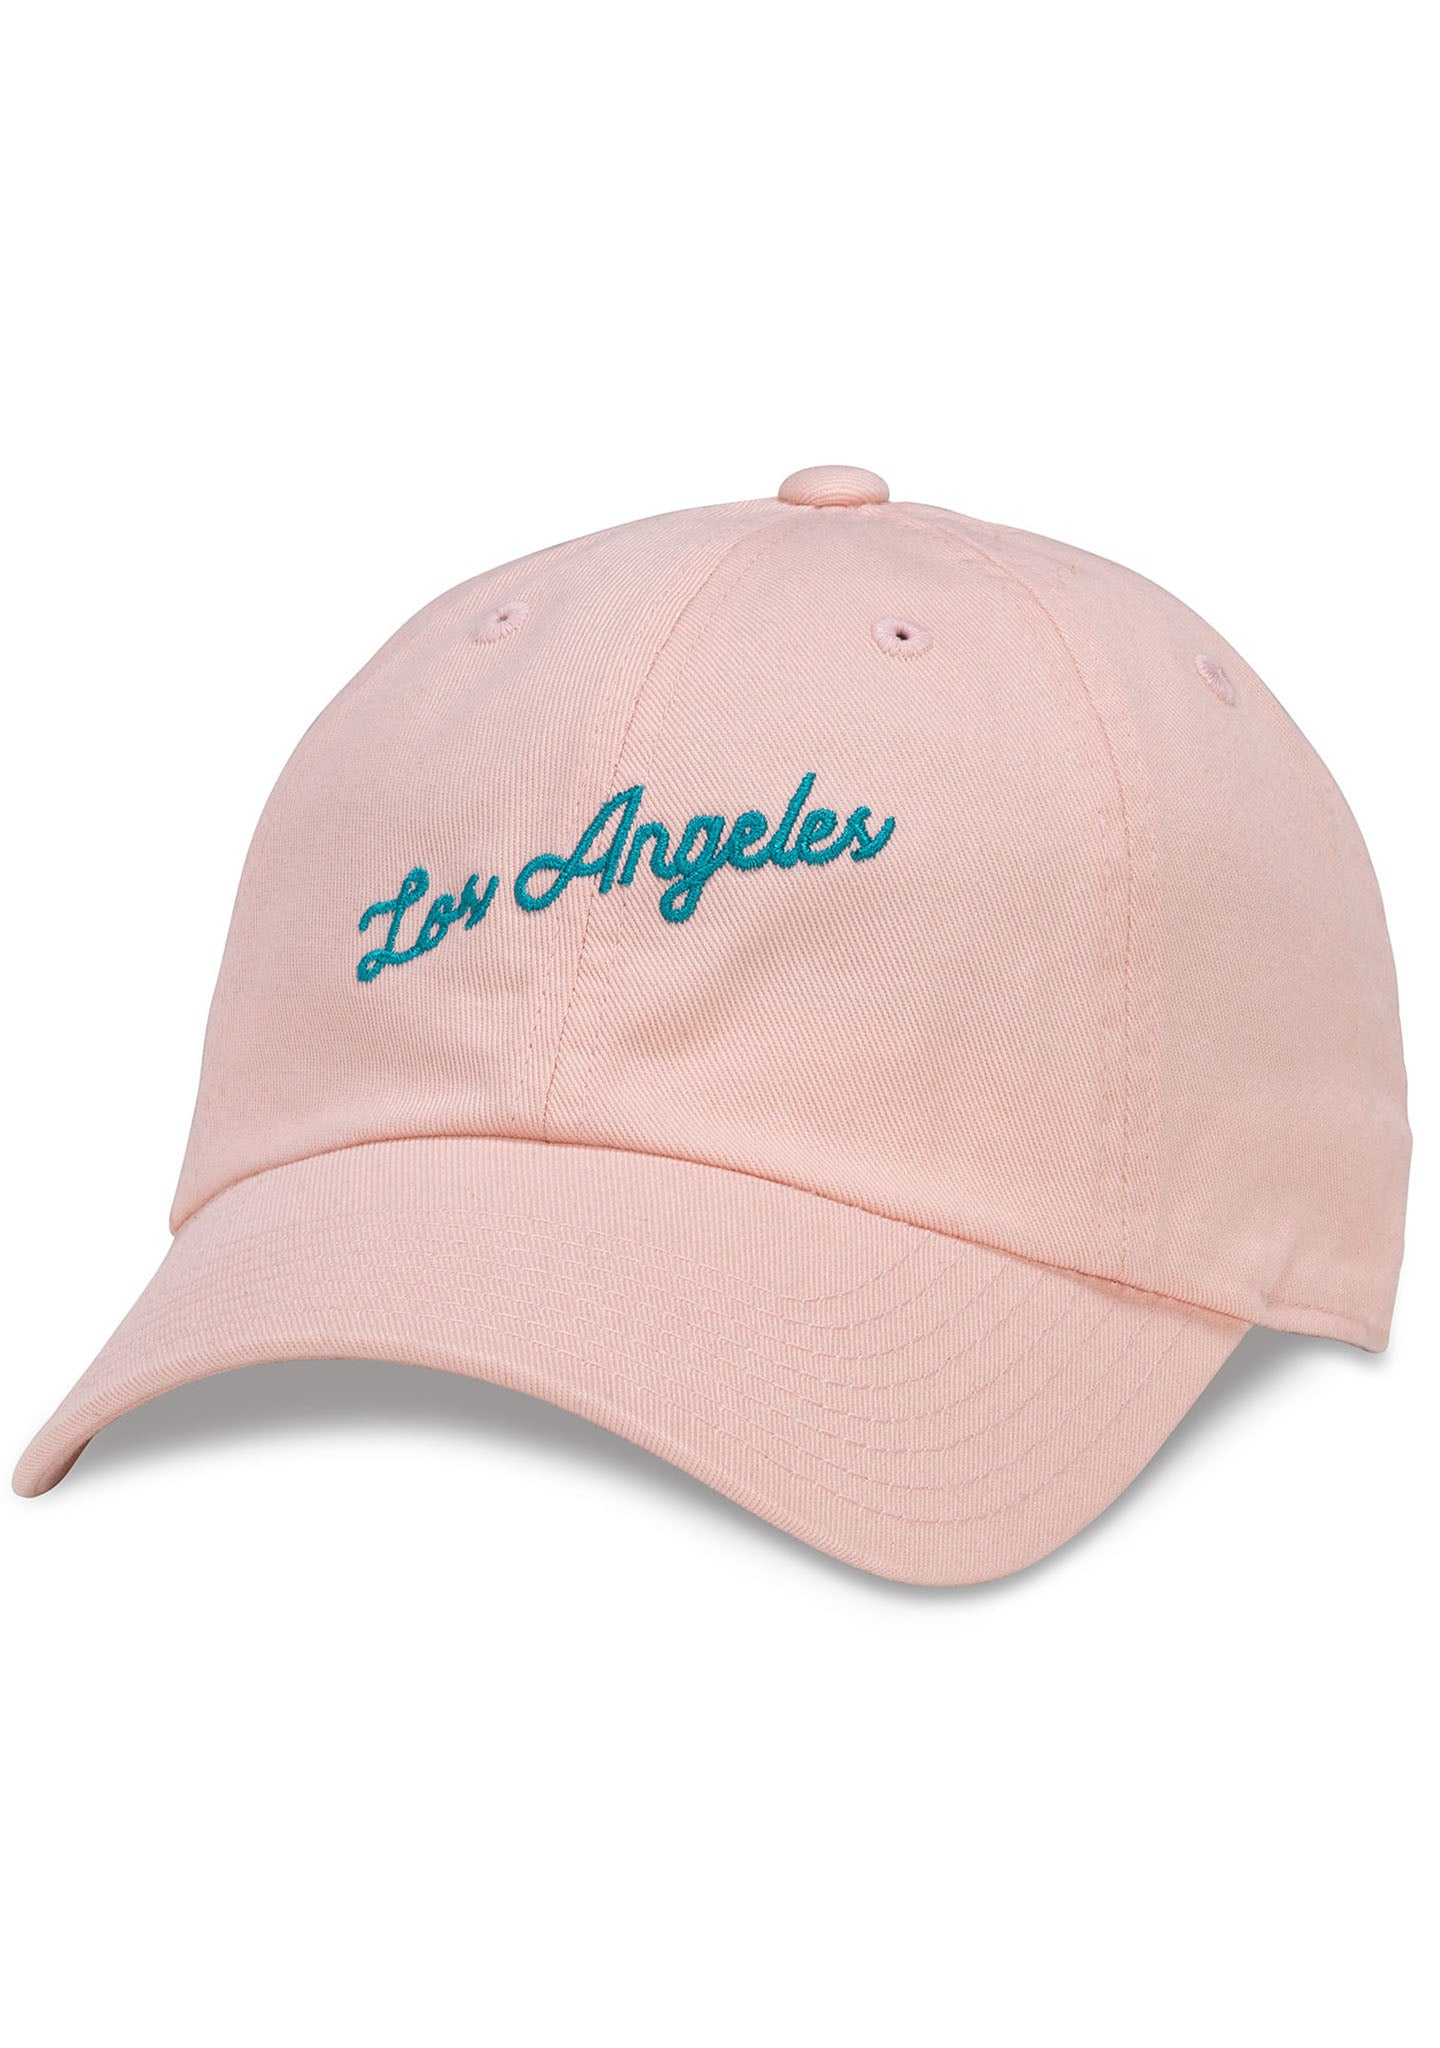 Los Angeles Board Shorts Raglan Hat in Pink